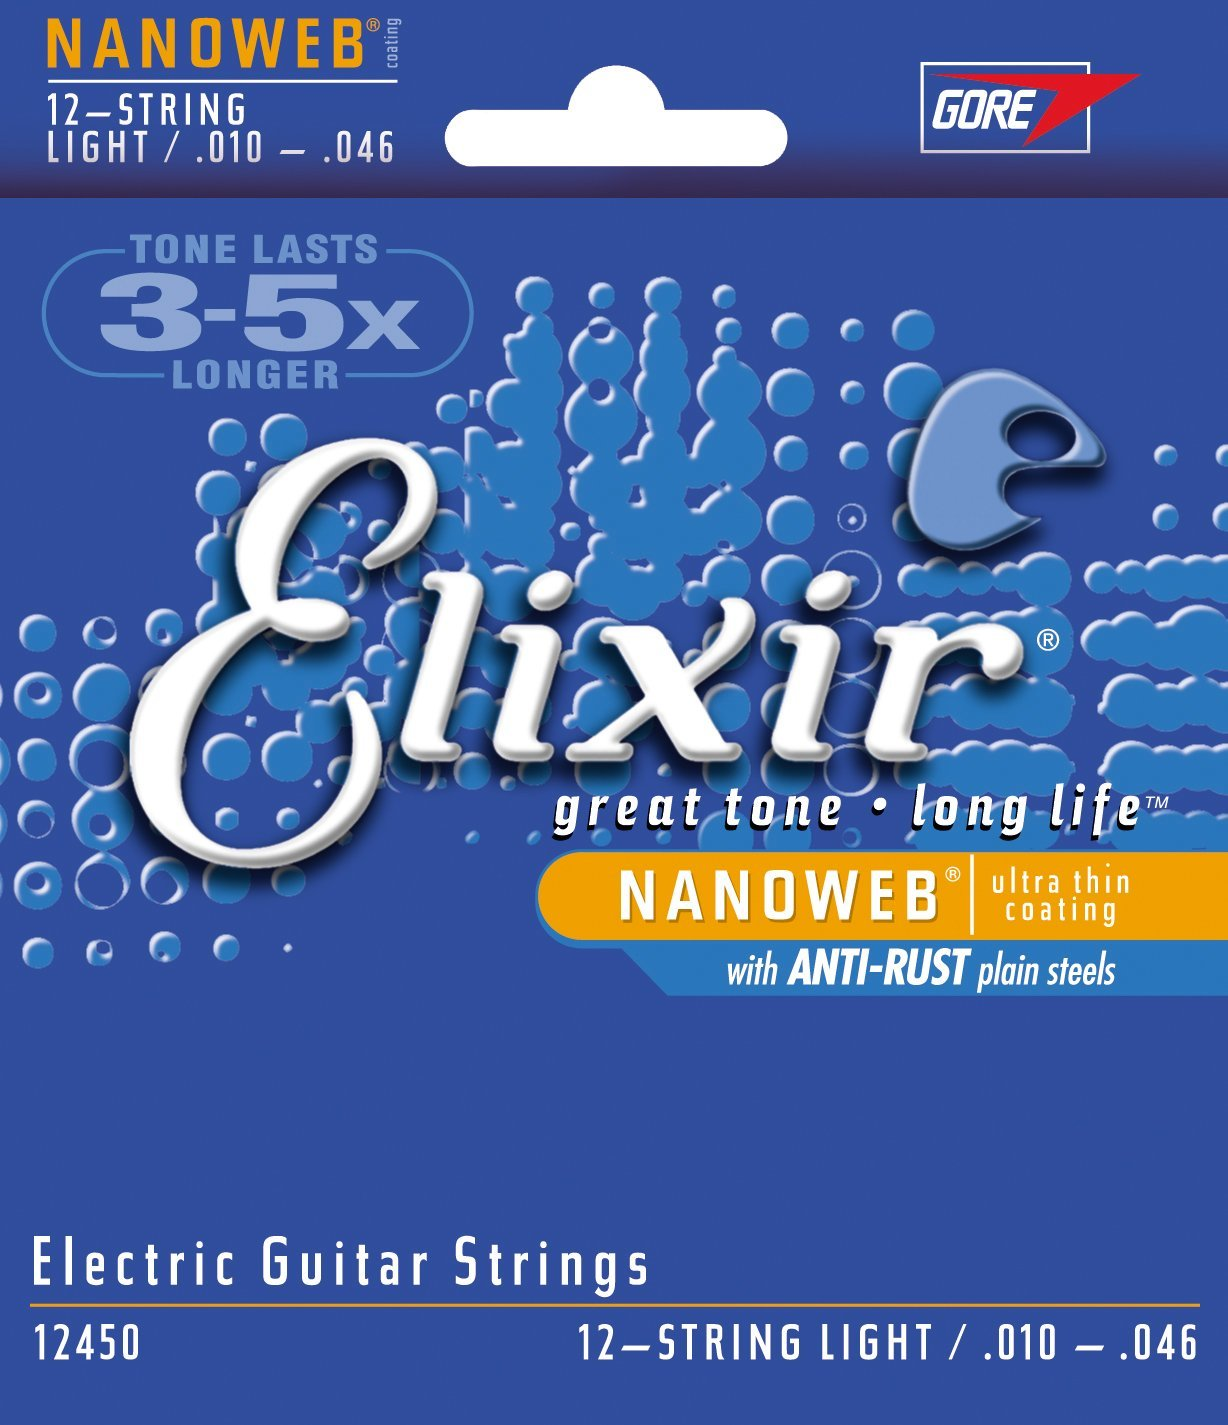 Elixir Strings Electric Guitar Strings 12 String Light B0018LZBTU elixir power converter wiring diagram elixir industries power elixir elx-30 wiring diagram at n-0.co